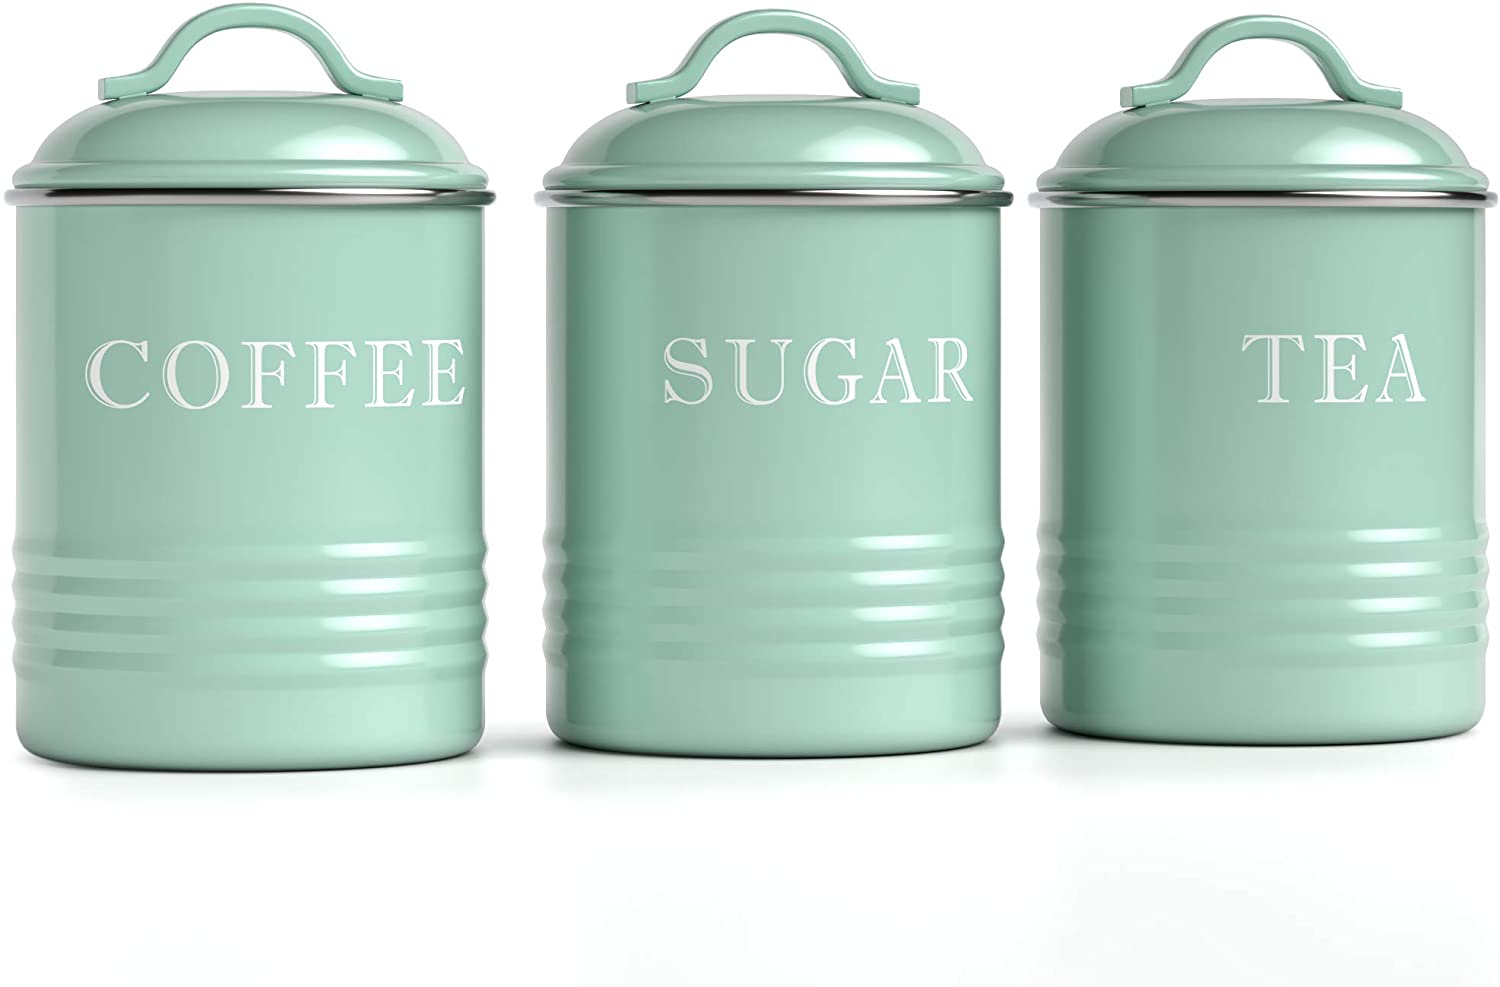 Barnyard Designs Airtight Kitchen Canister Decorations with Lids